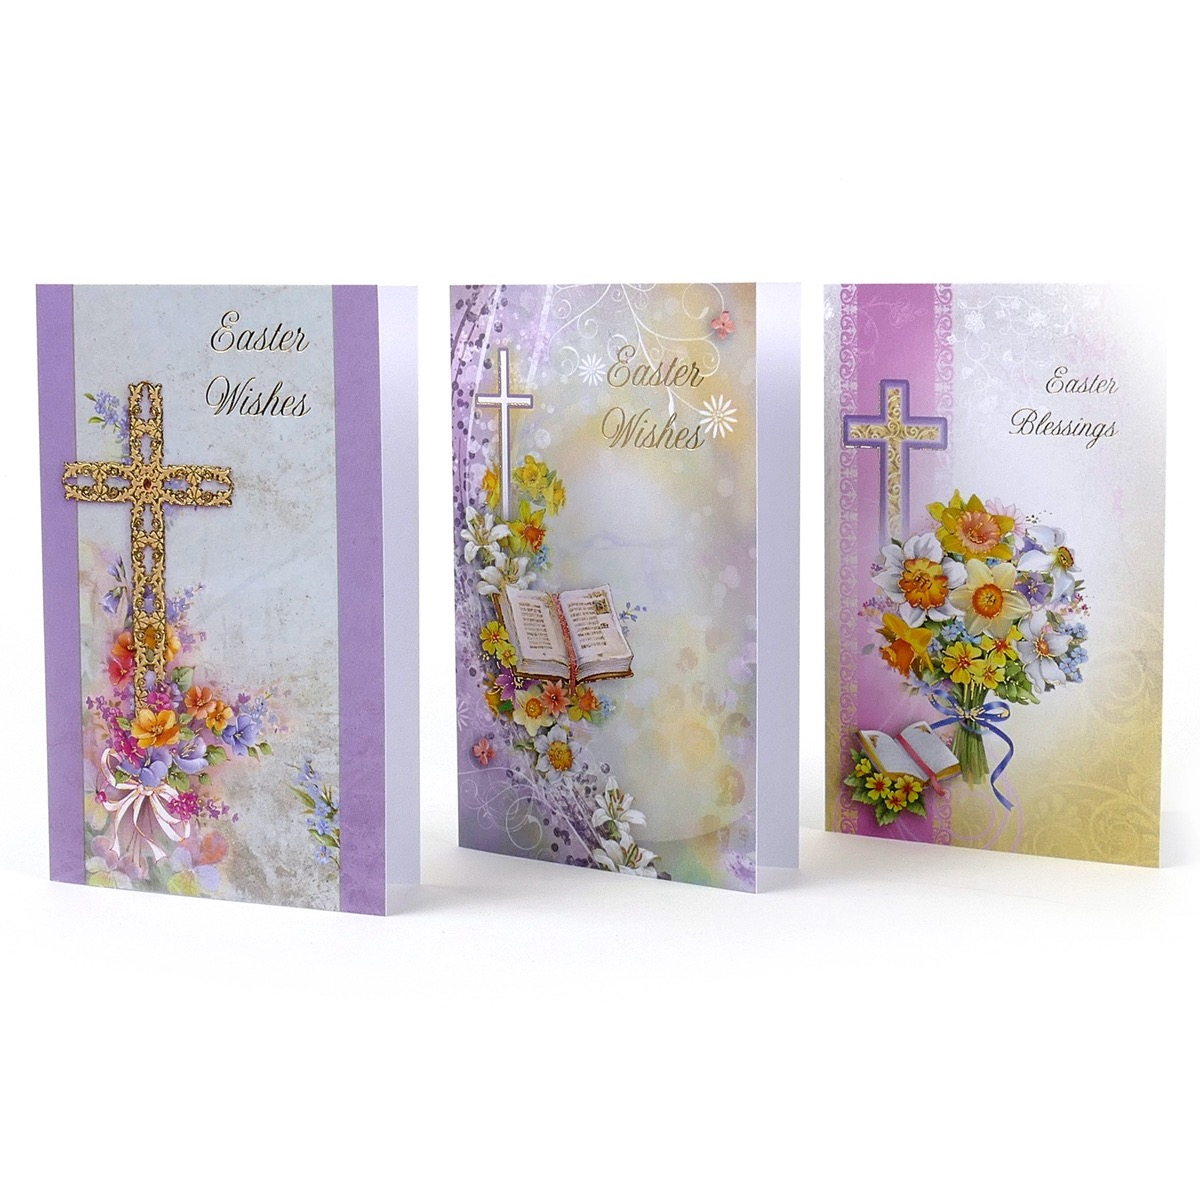 Pack of 12 Assorted Religious Design Easter Cards /& Envelopes.